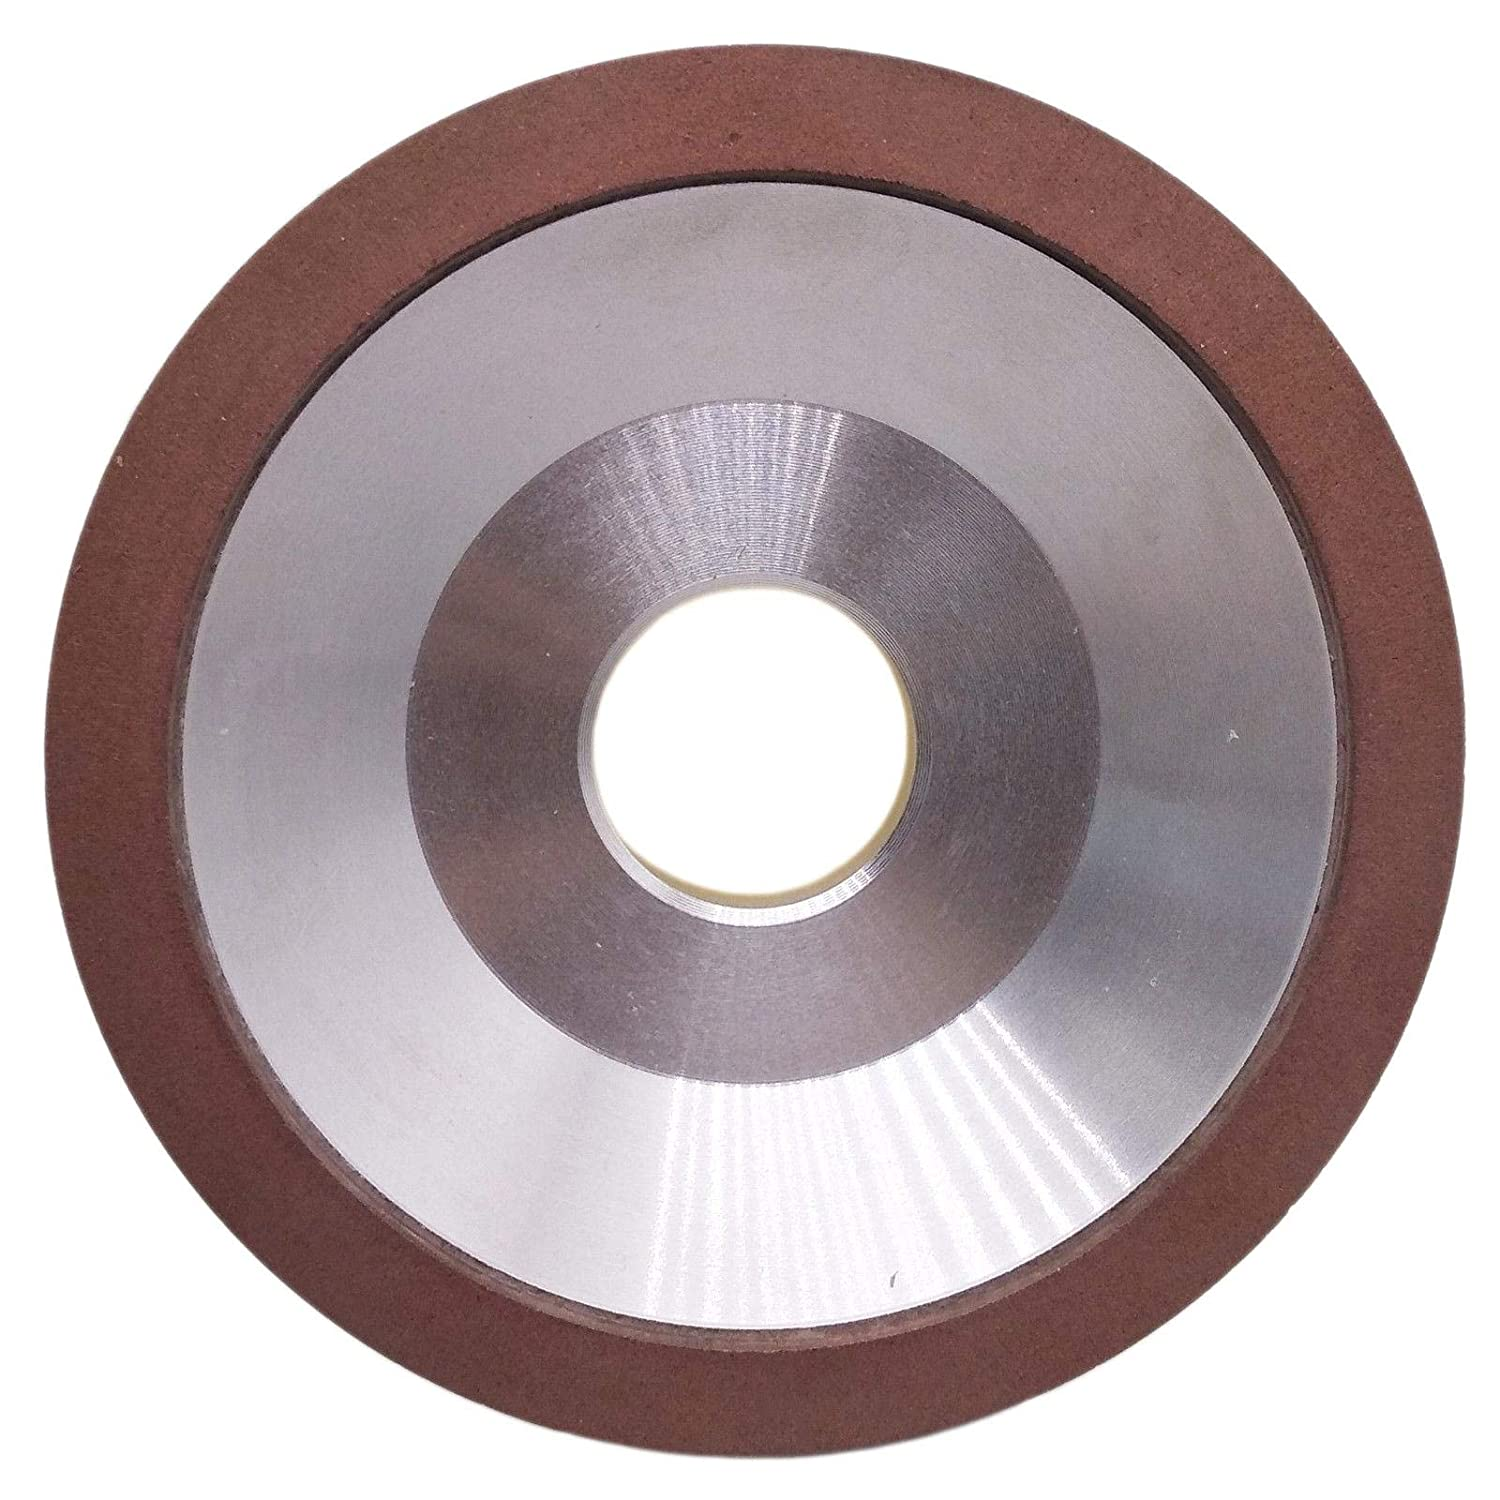 75mm Diamond Grinding Wheel Cup 180 Grit Tool Cutter Grinder For Carbide Metal